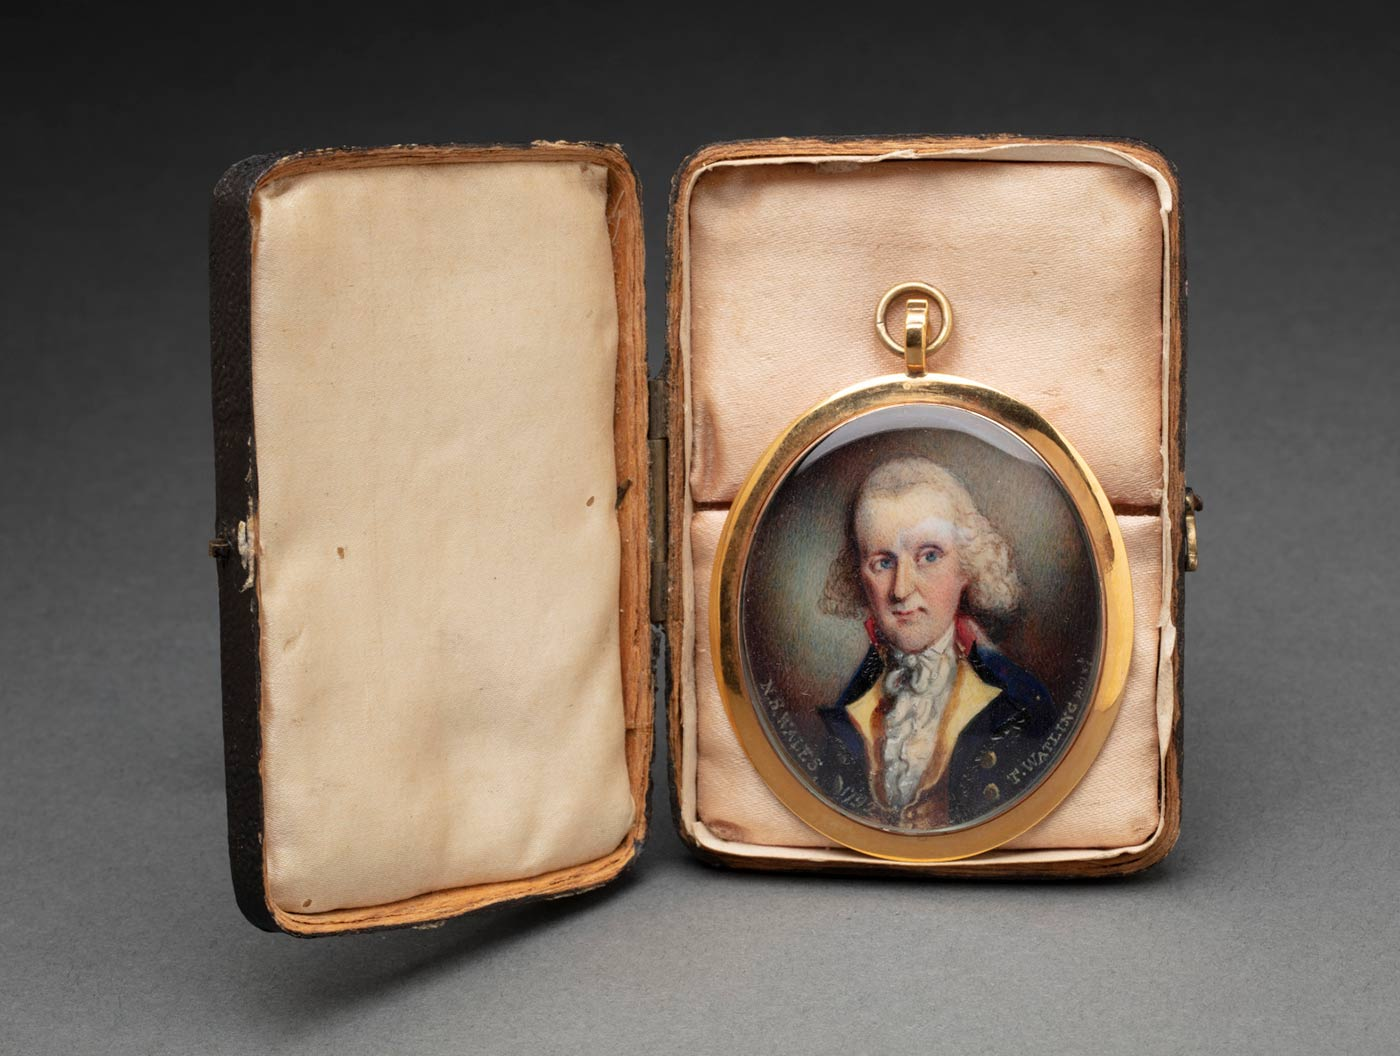 An oval painted portrait depicting a man with white hair wearing a blue coat over a gold vest and a white shirt. Written along the bottom edge is 'N.S. WALES 1792 T. WATLING [?]'. The portrait is mounted in a gold frame and covered in glass. There is a loop at the top of the frame attached to which is a ring. The portrait sits inside a black case which is covered in cream fabric on the lid and pink fabric on the base. The padding in the base is in two sections.